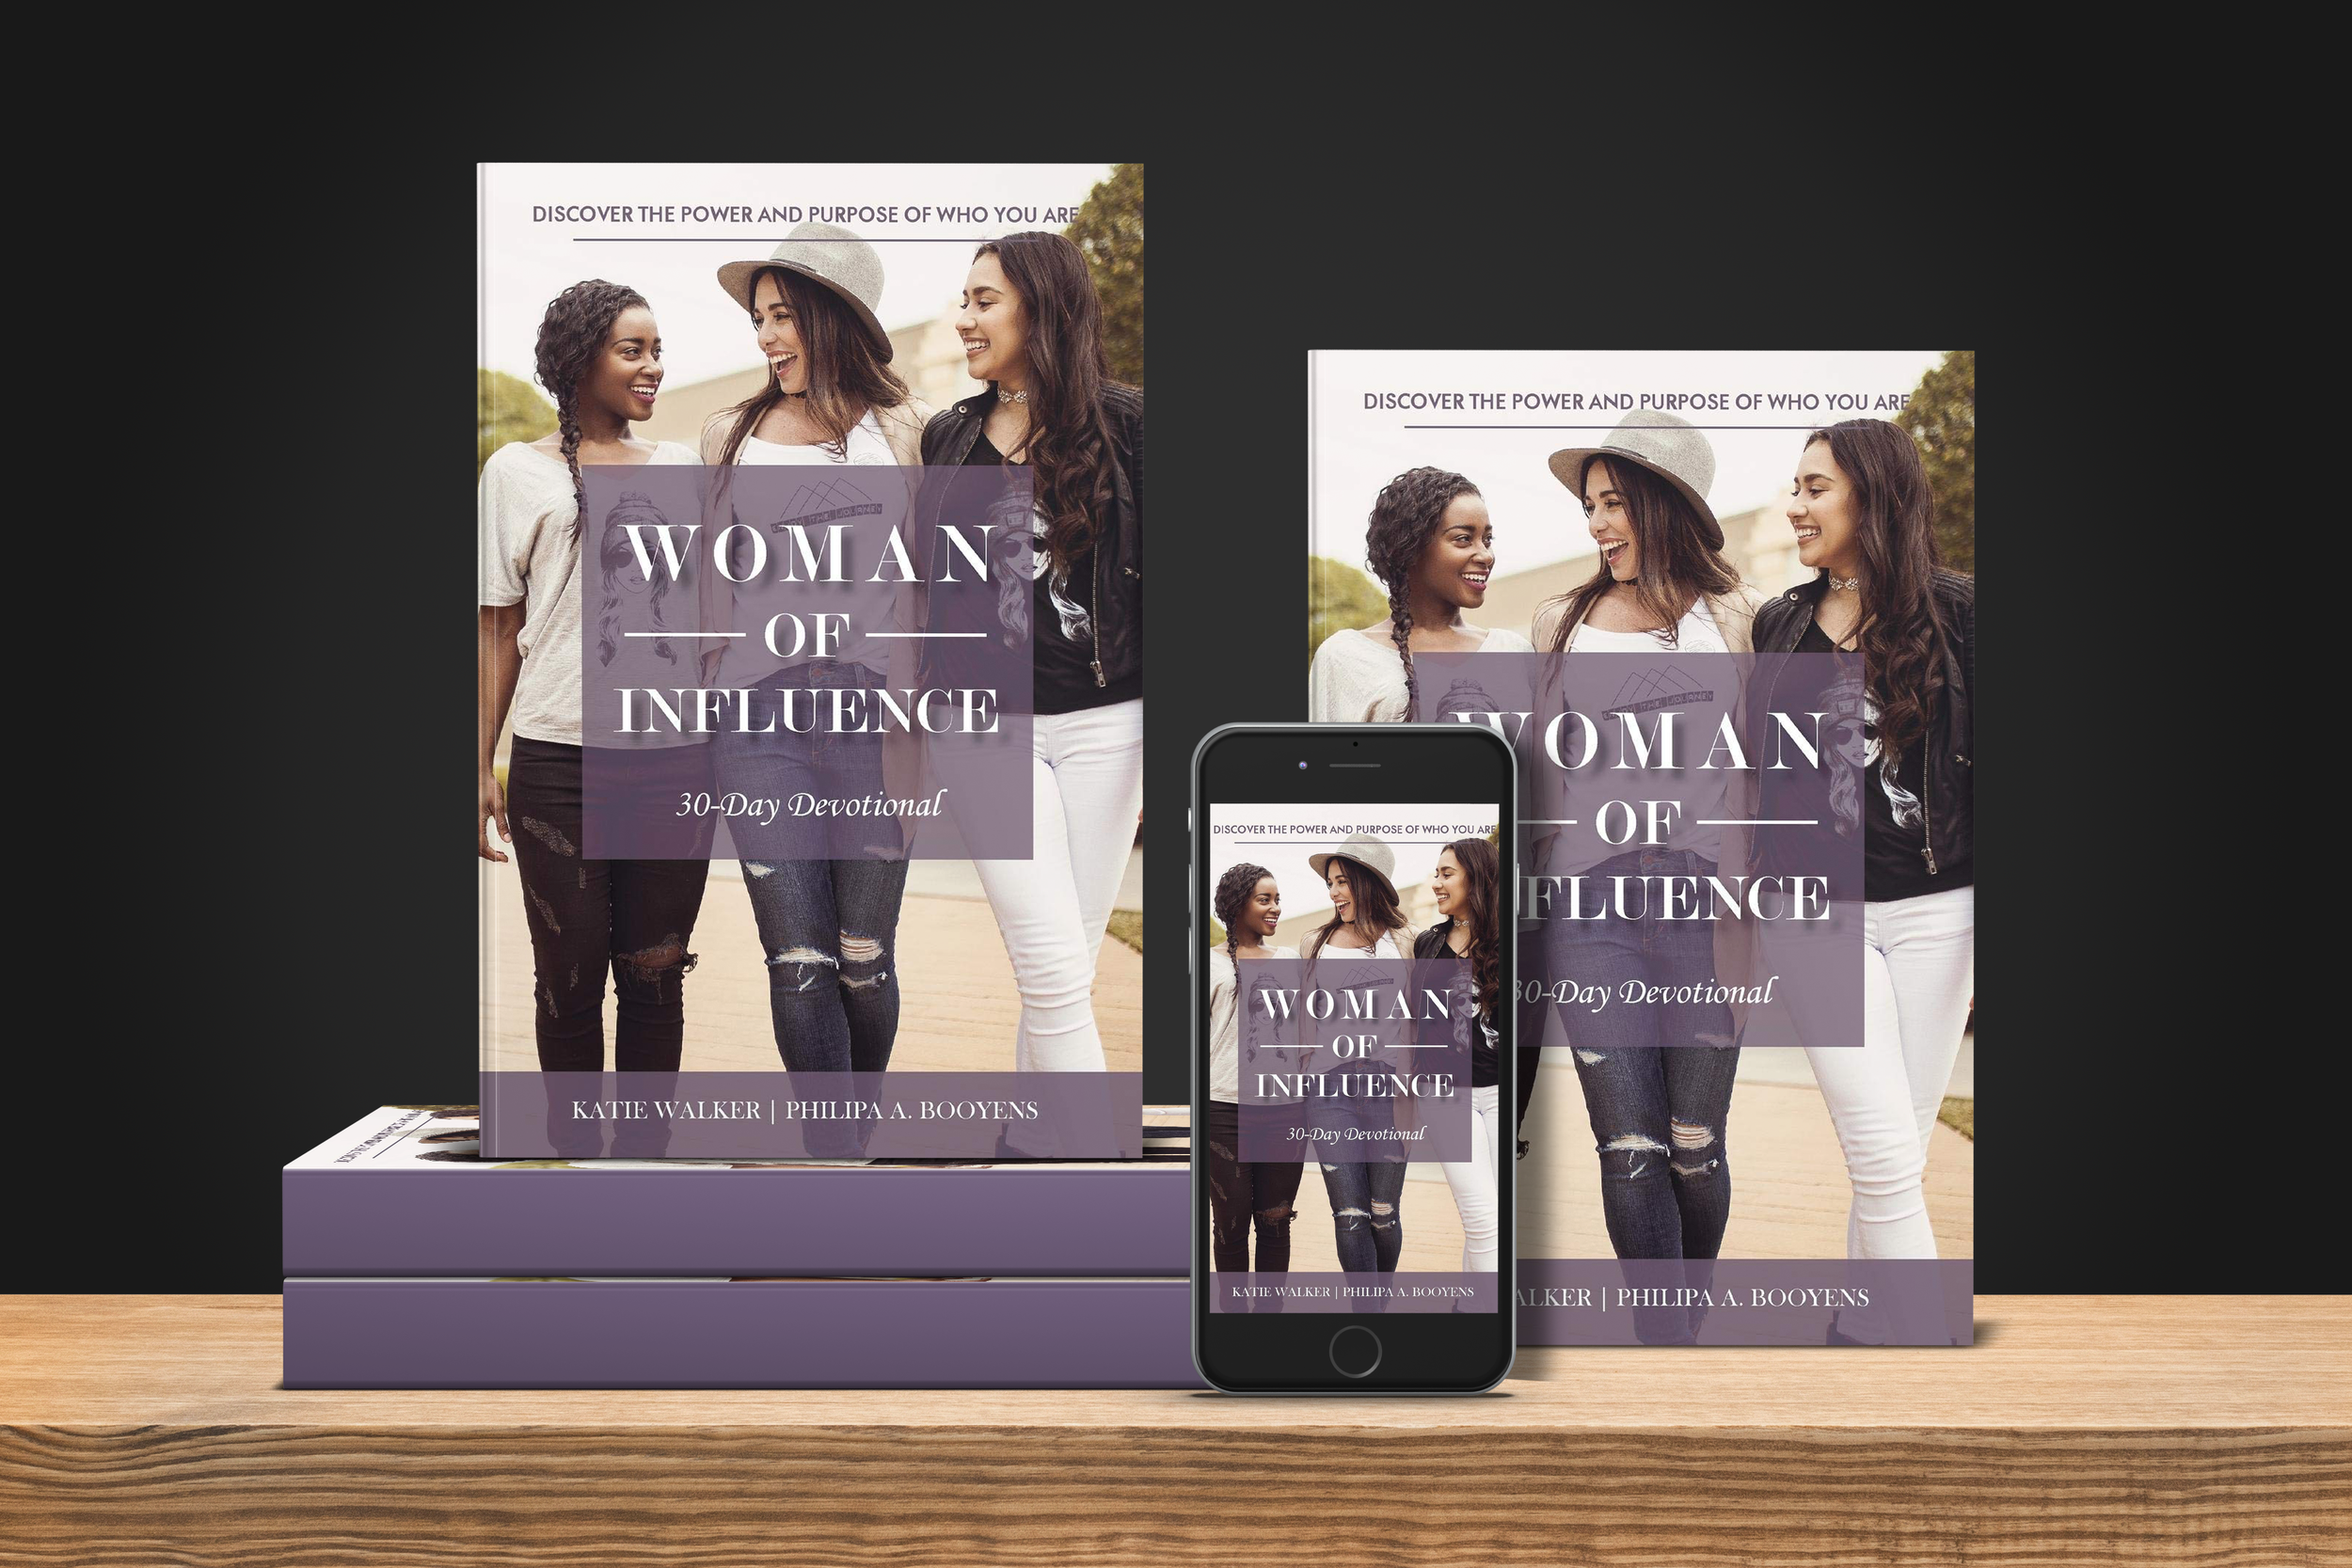 Women, it's time to rise up. - The Woman of Influence 30-Day Devotional and companion workbook are now available. Buy them together for only $25.00!